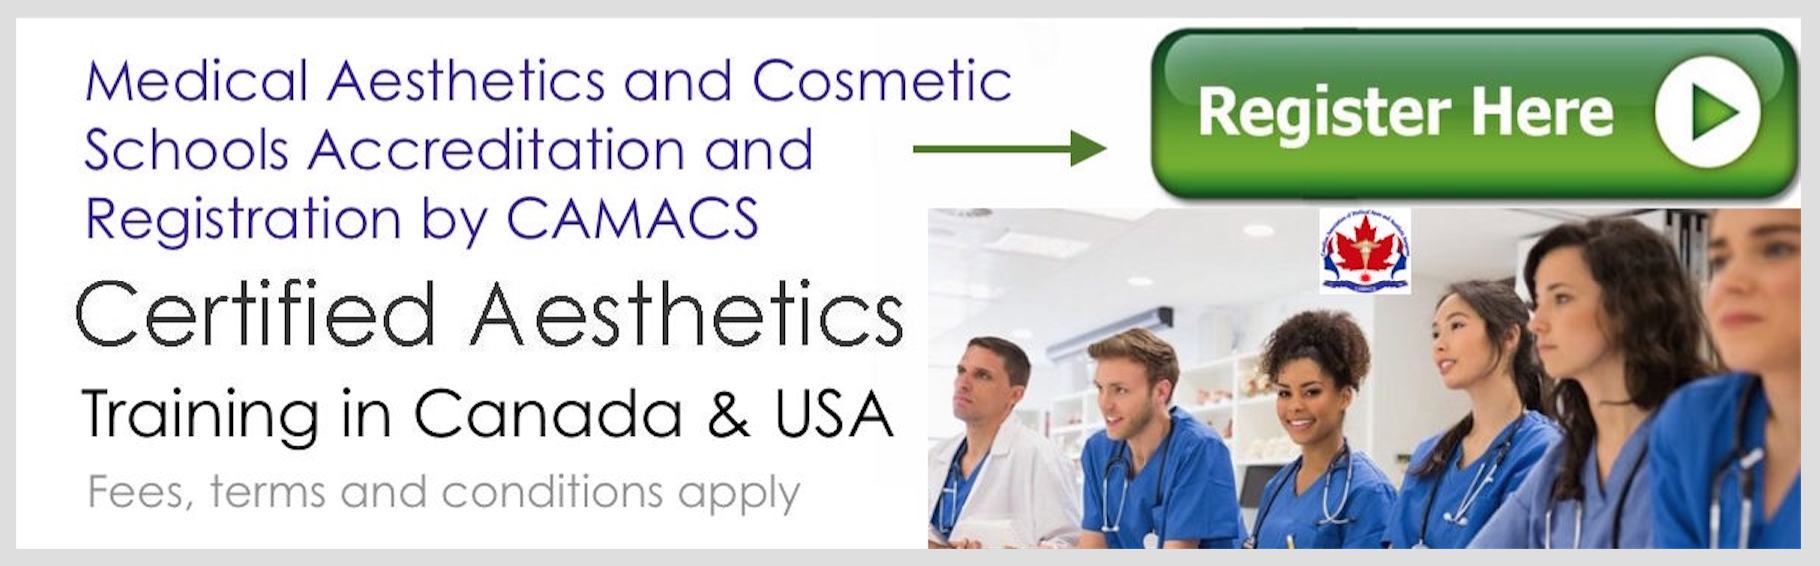 Canadian Association of Medical Spas and Aesthetic Surgeons